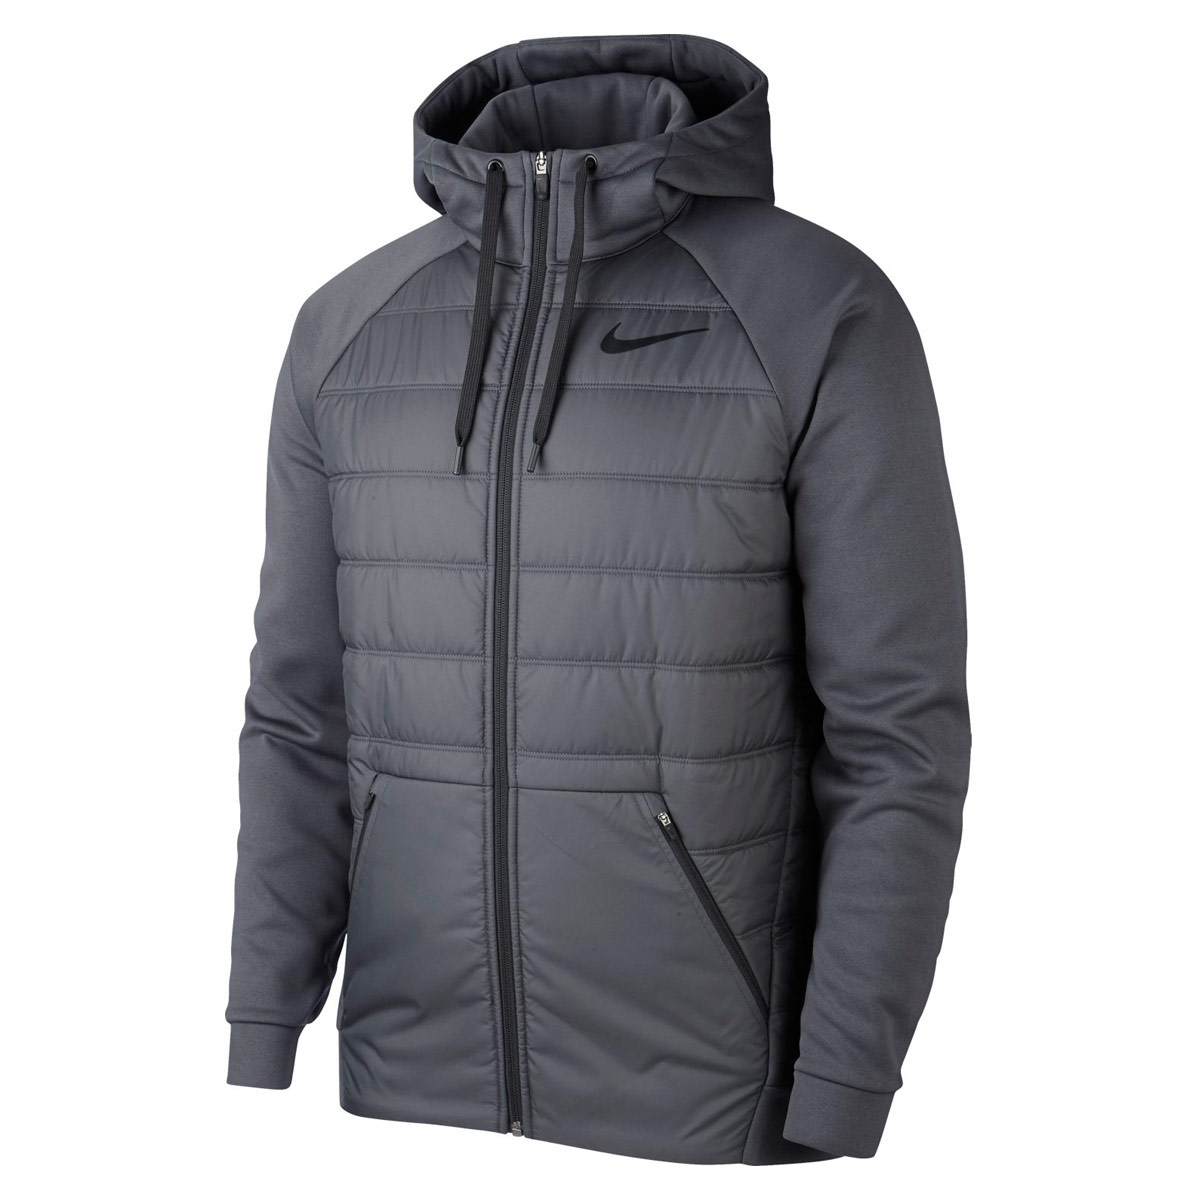 42fd01bf93e60 Nike Therma Full-Zip Hoodie - Running jackets for Men - Grey